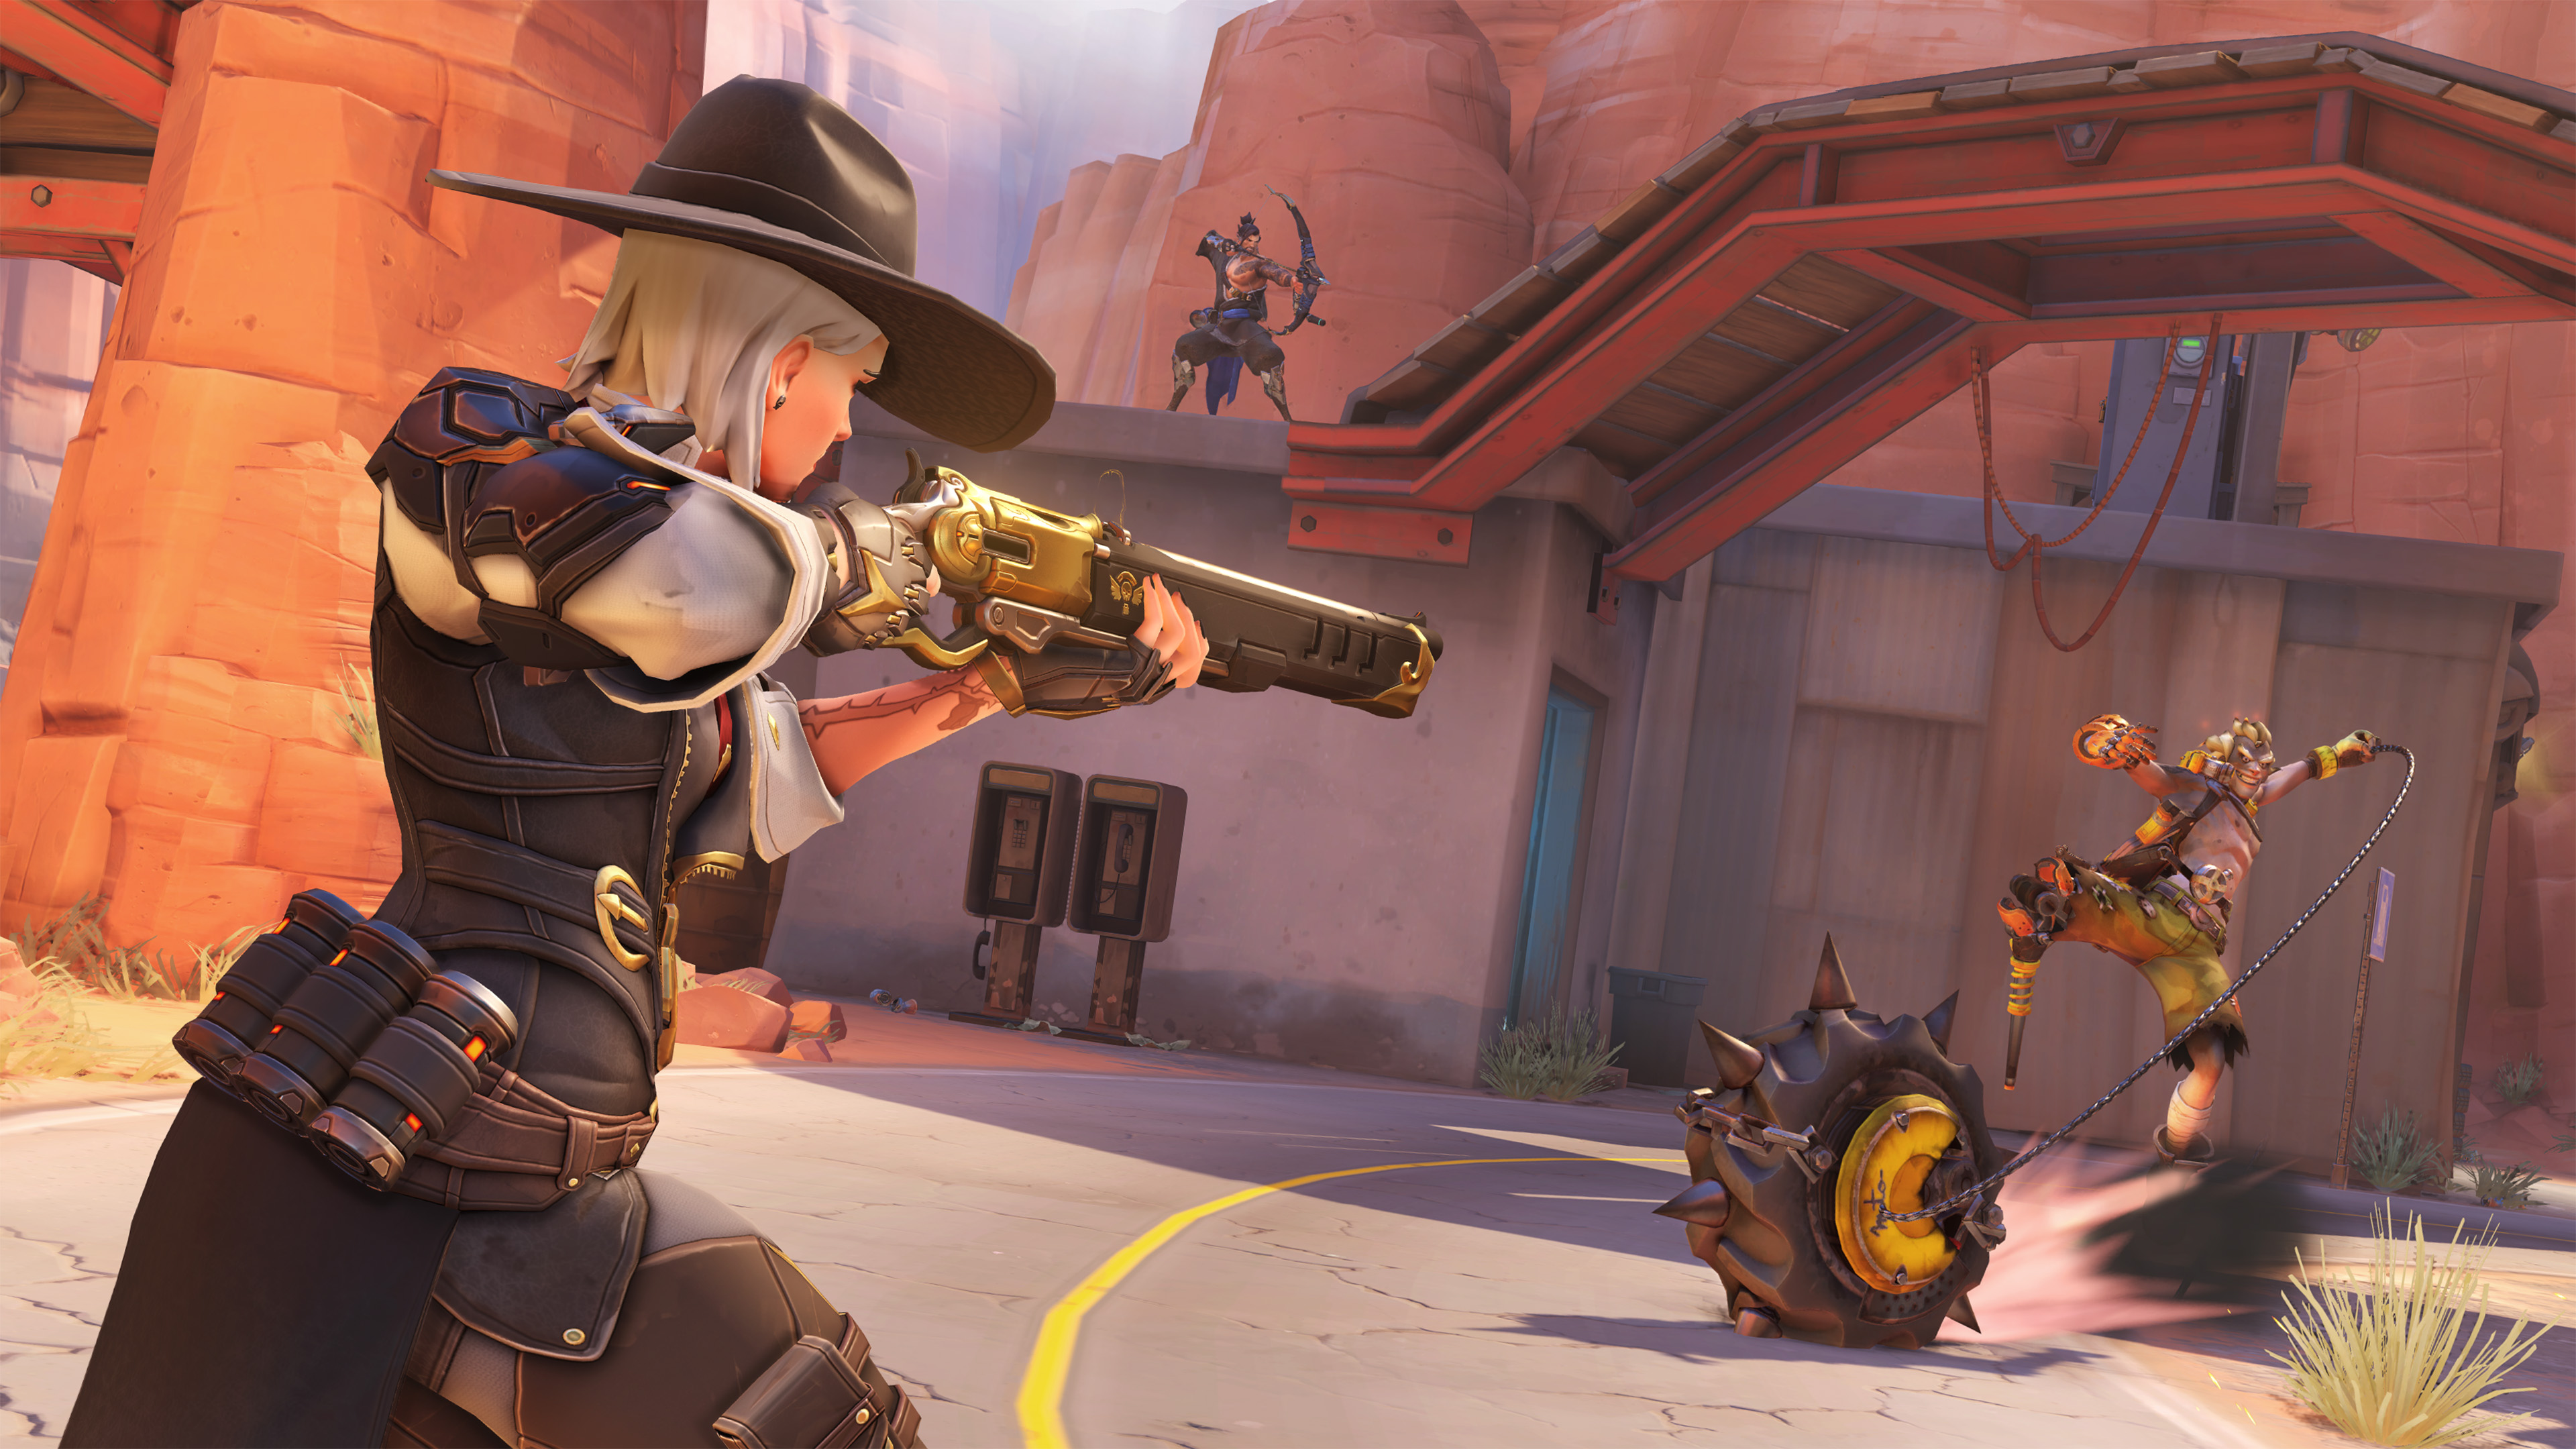 Ashe Overwatch Screen 4